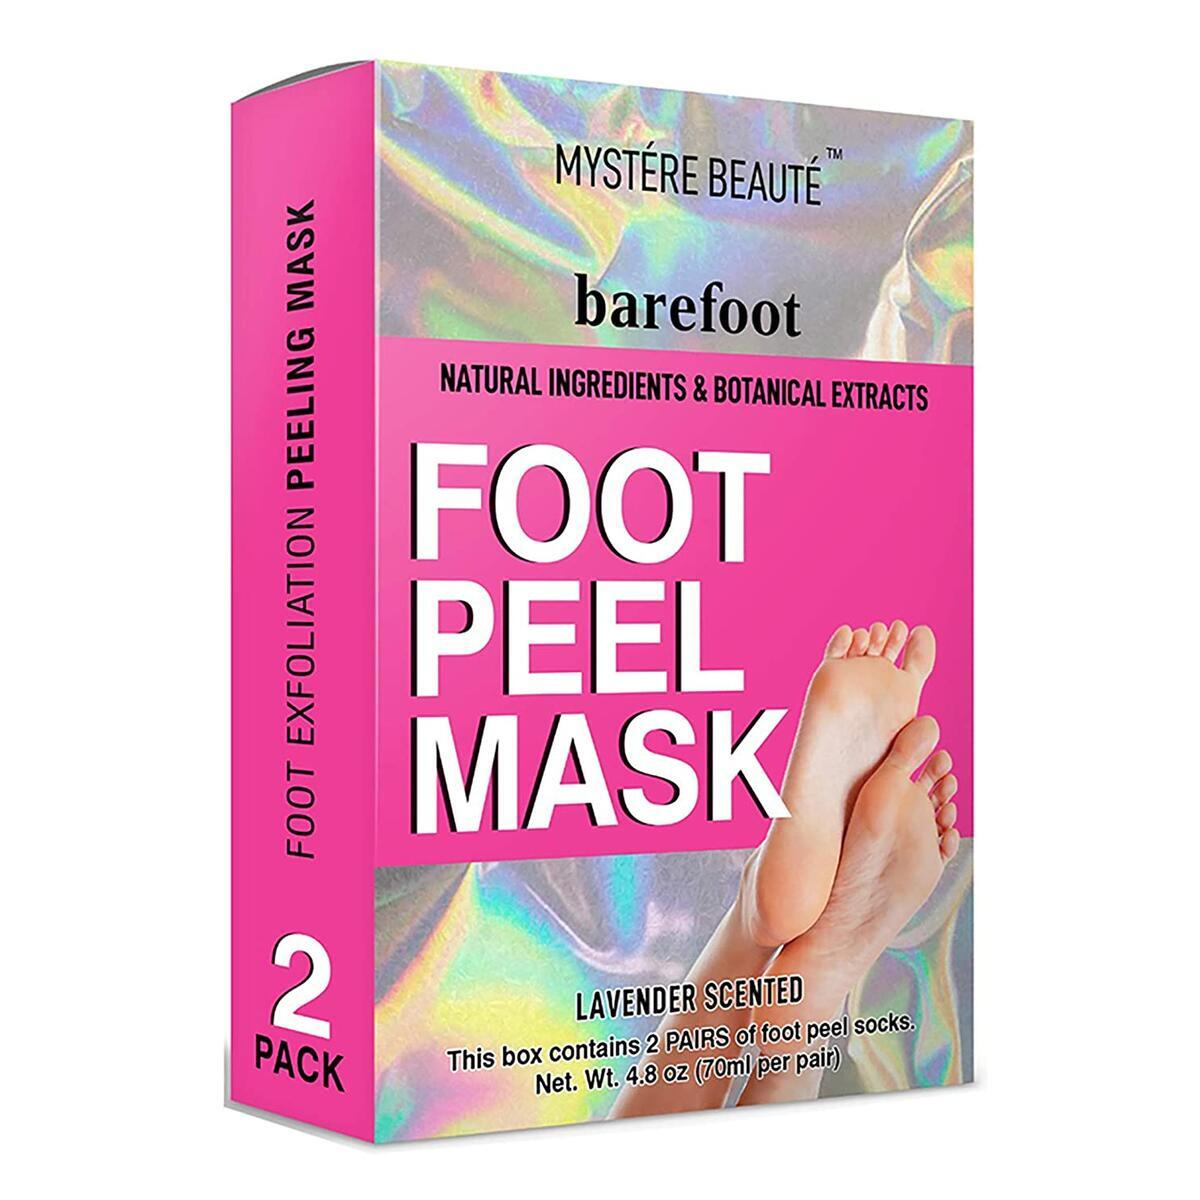 MYSTERE BEAUTE Exfoliant Foot Peel Mask Barefoot - Twin Pack - Lavender Scented 2 Pairs of Peeling Booties, Natural Foot Care Exfoliating Treatment for Cracked Heels, Calluses - Removes Dead, Dry Skin